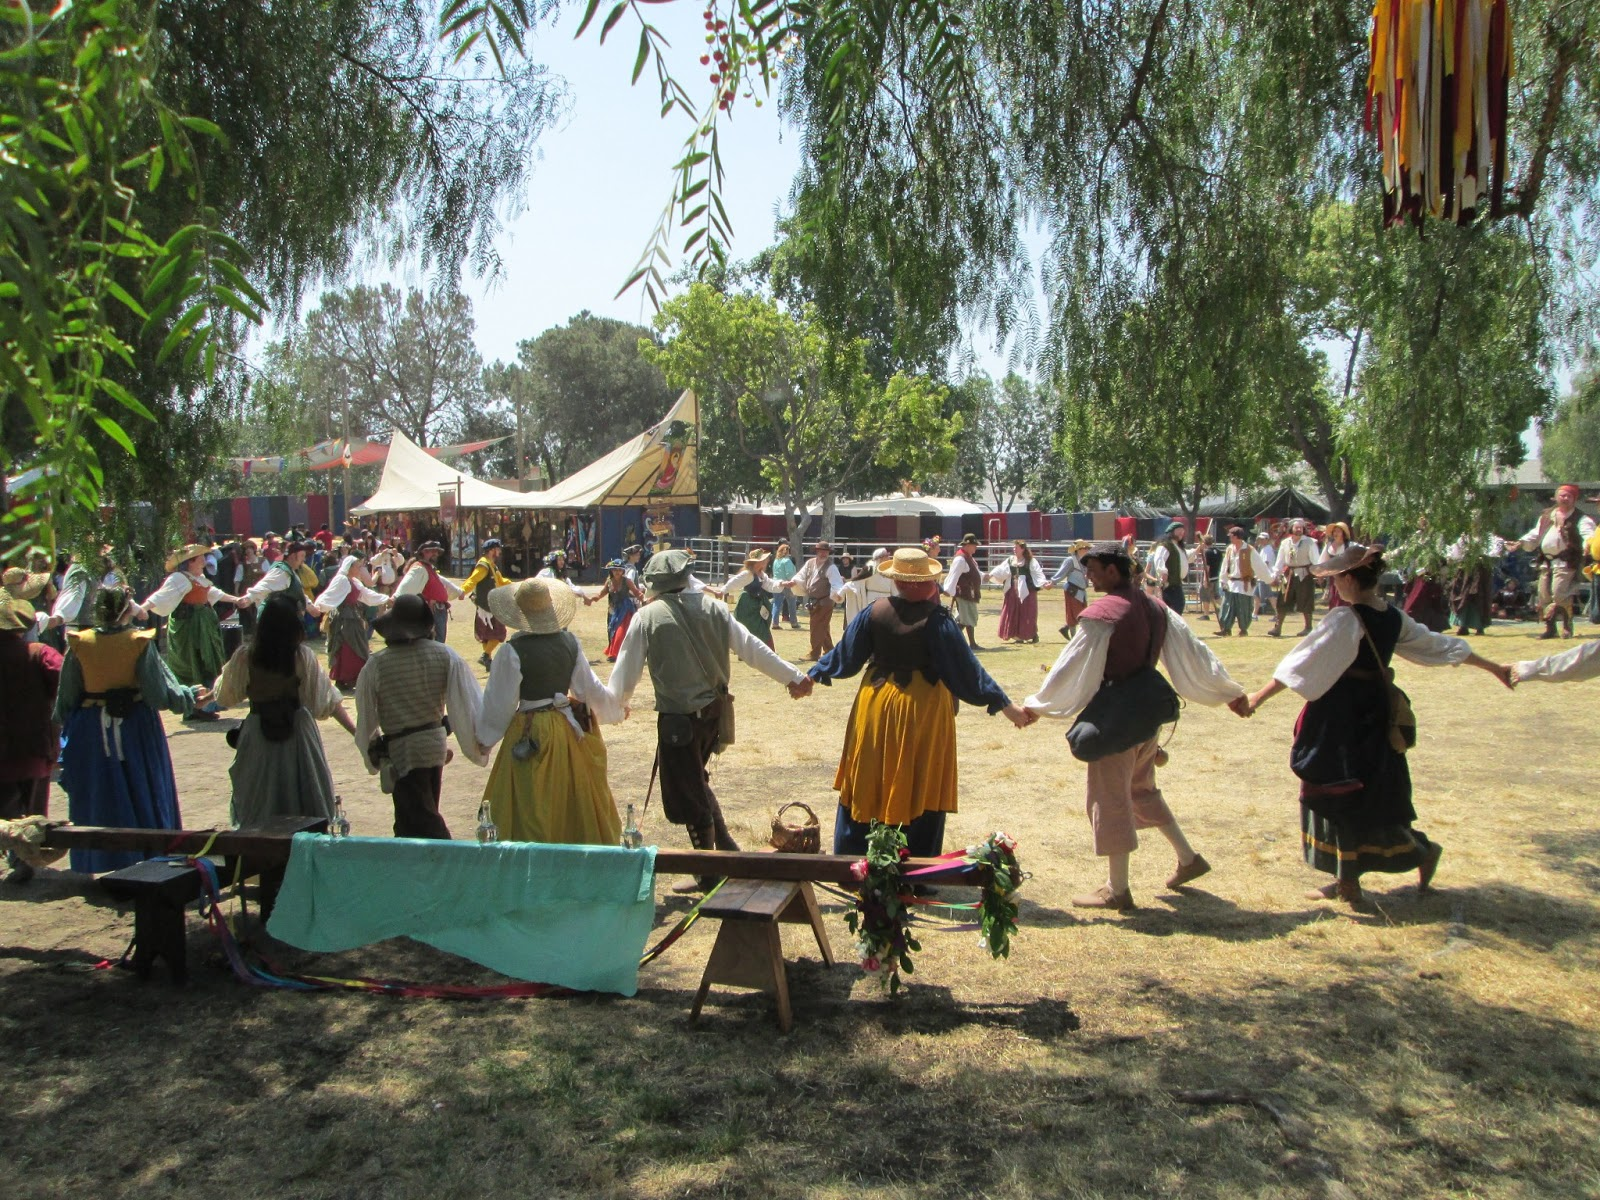 Renaissance Fairs: My Tiny Studio: Southern California Renaissance Faire 2013